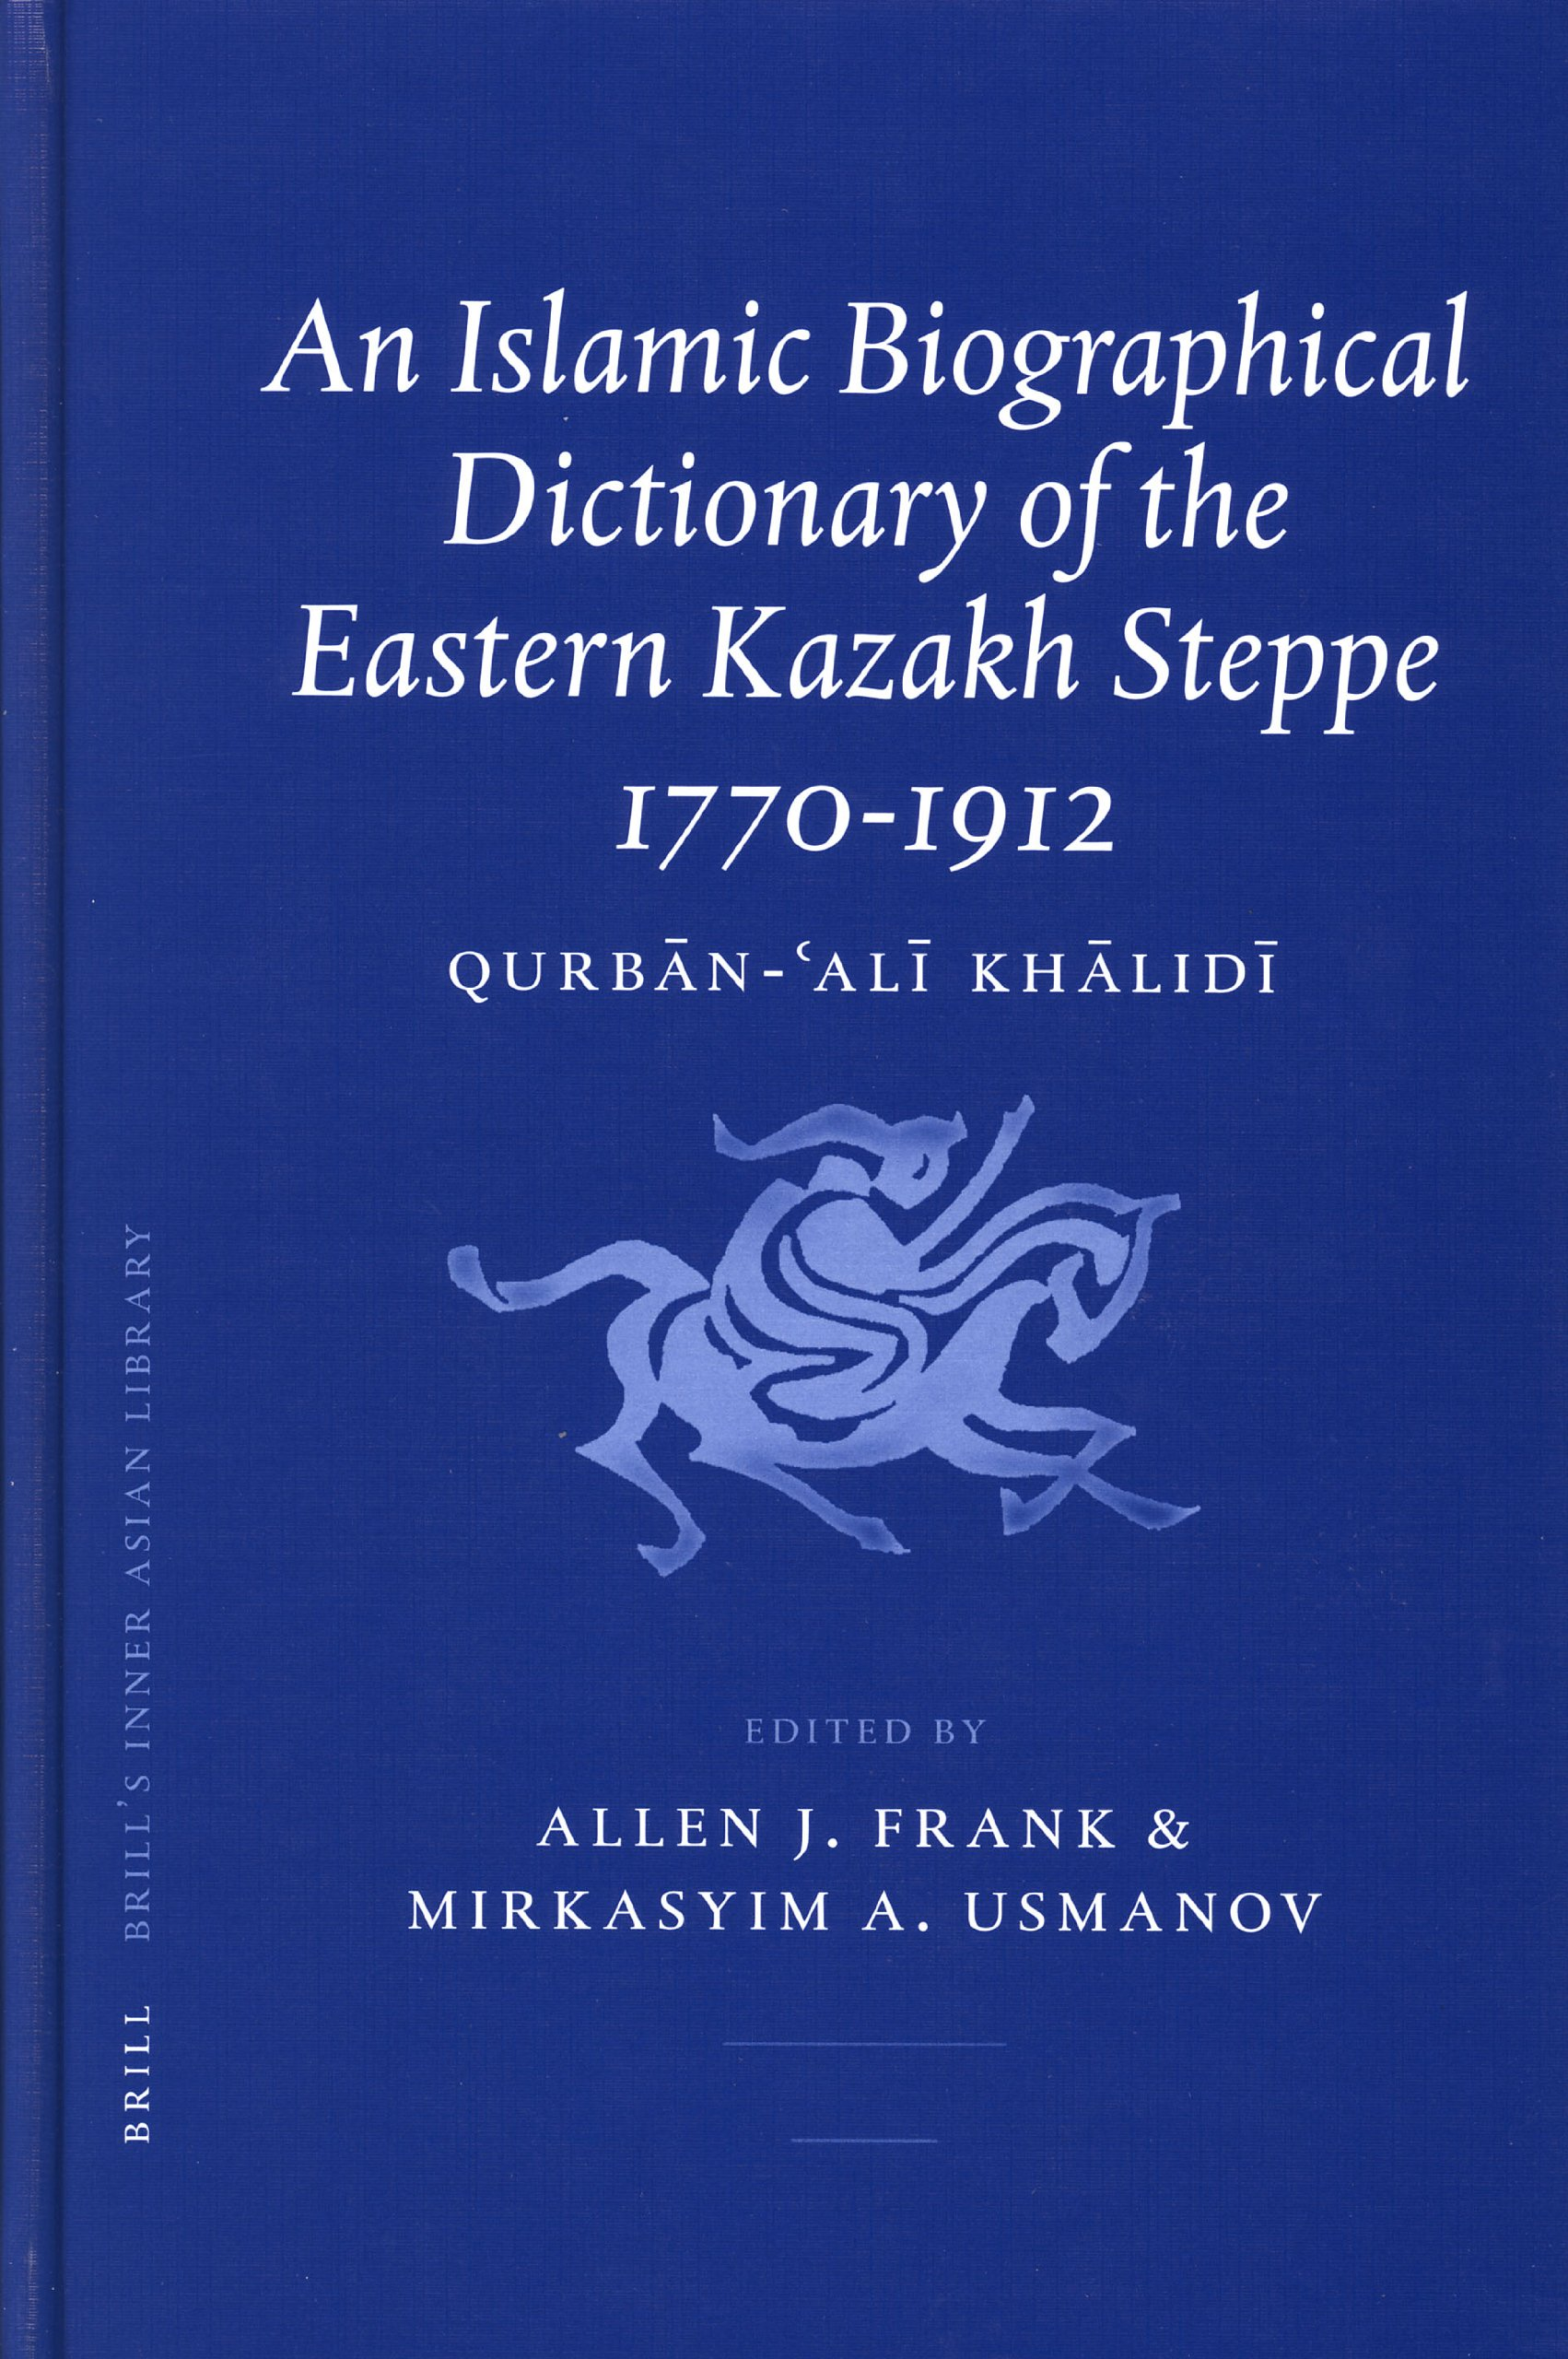 An Islamic Biographical Dictionary of the Eastern Kazakh Steppe: 1770-1912 (Brill's Inner Asian Library) (English and Arabic Edition) by Brill